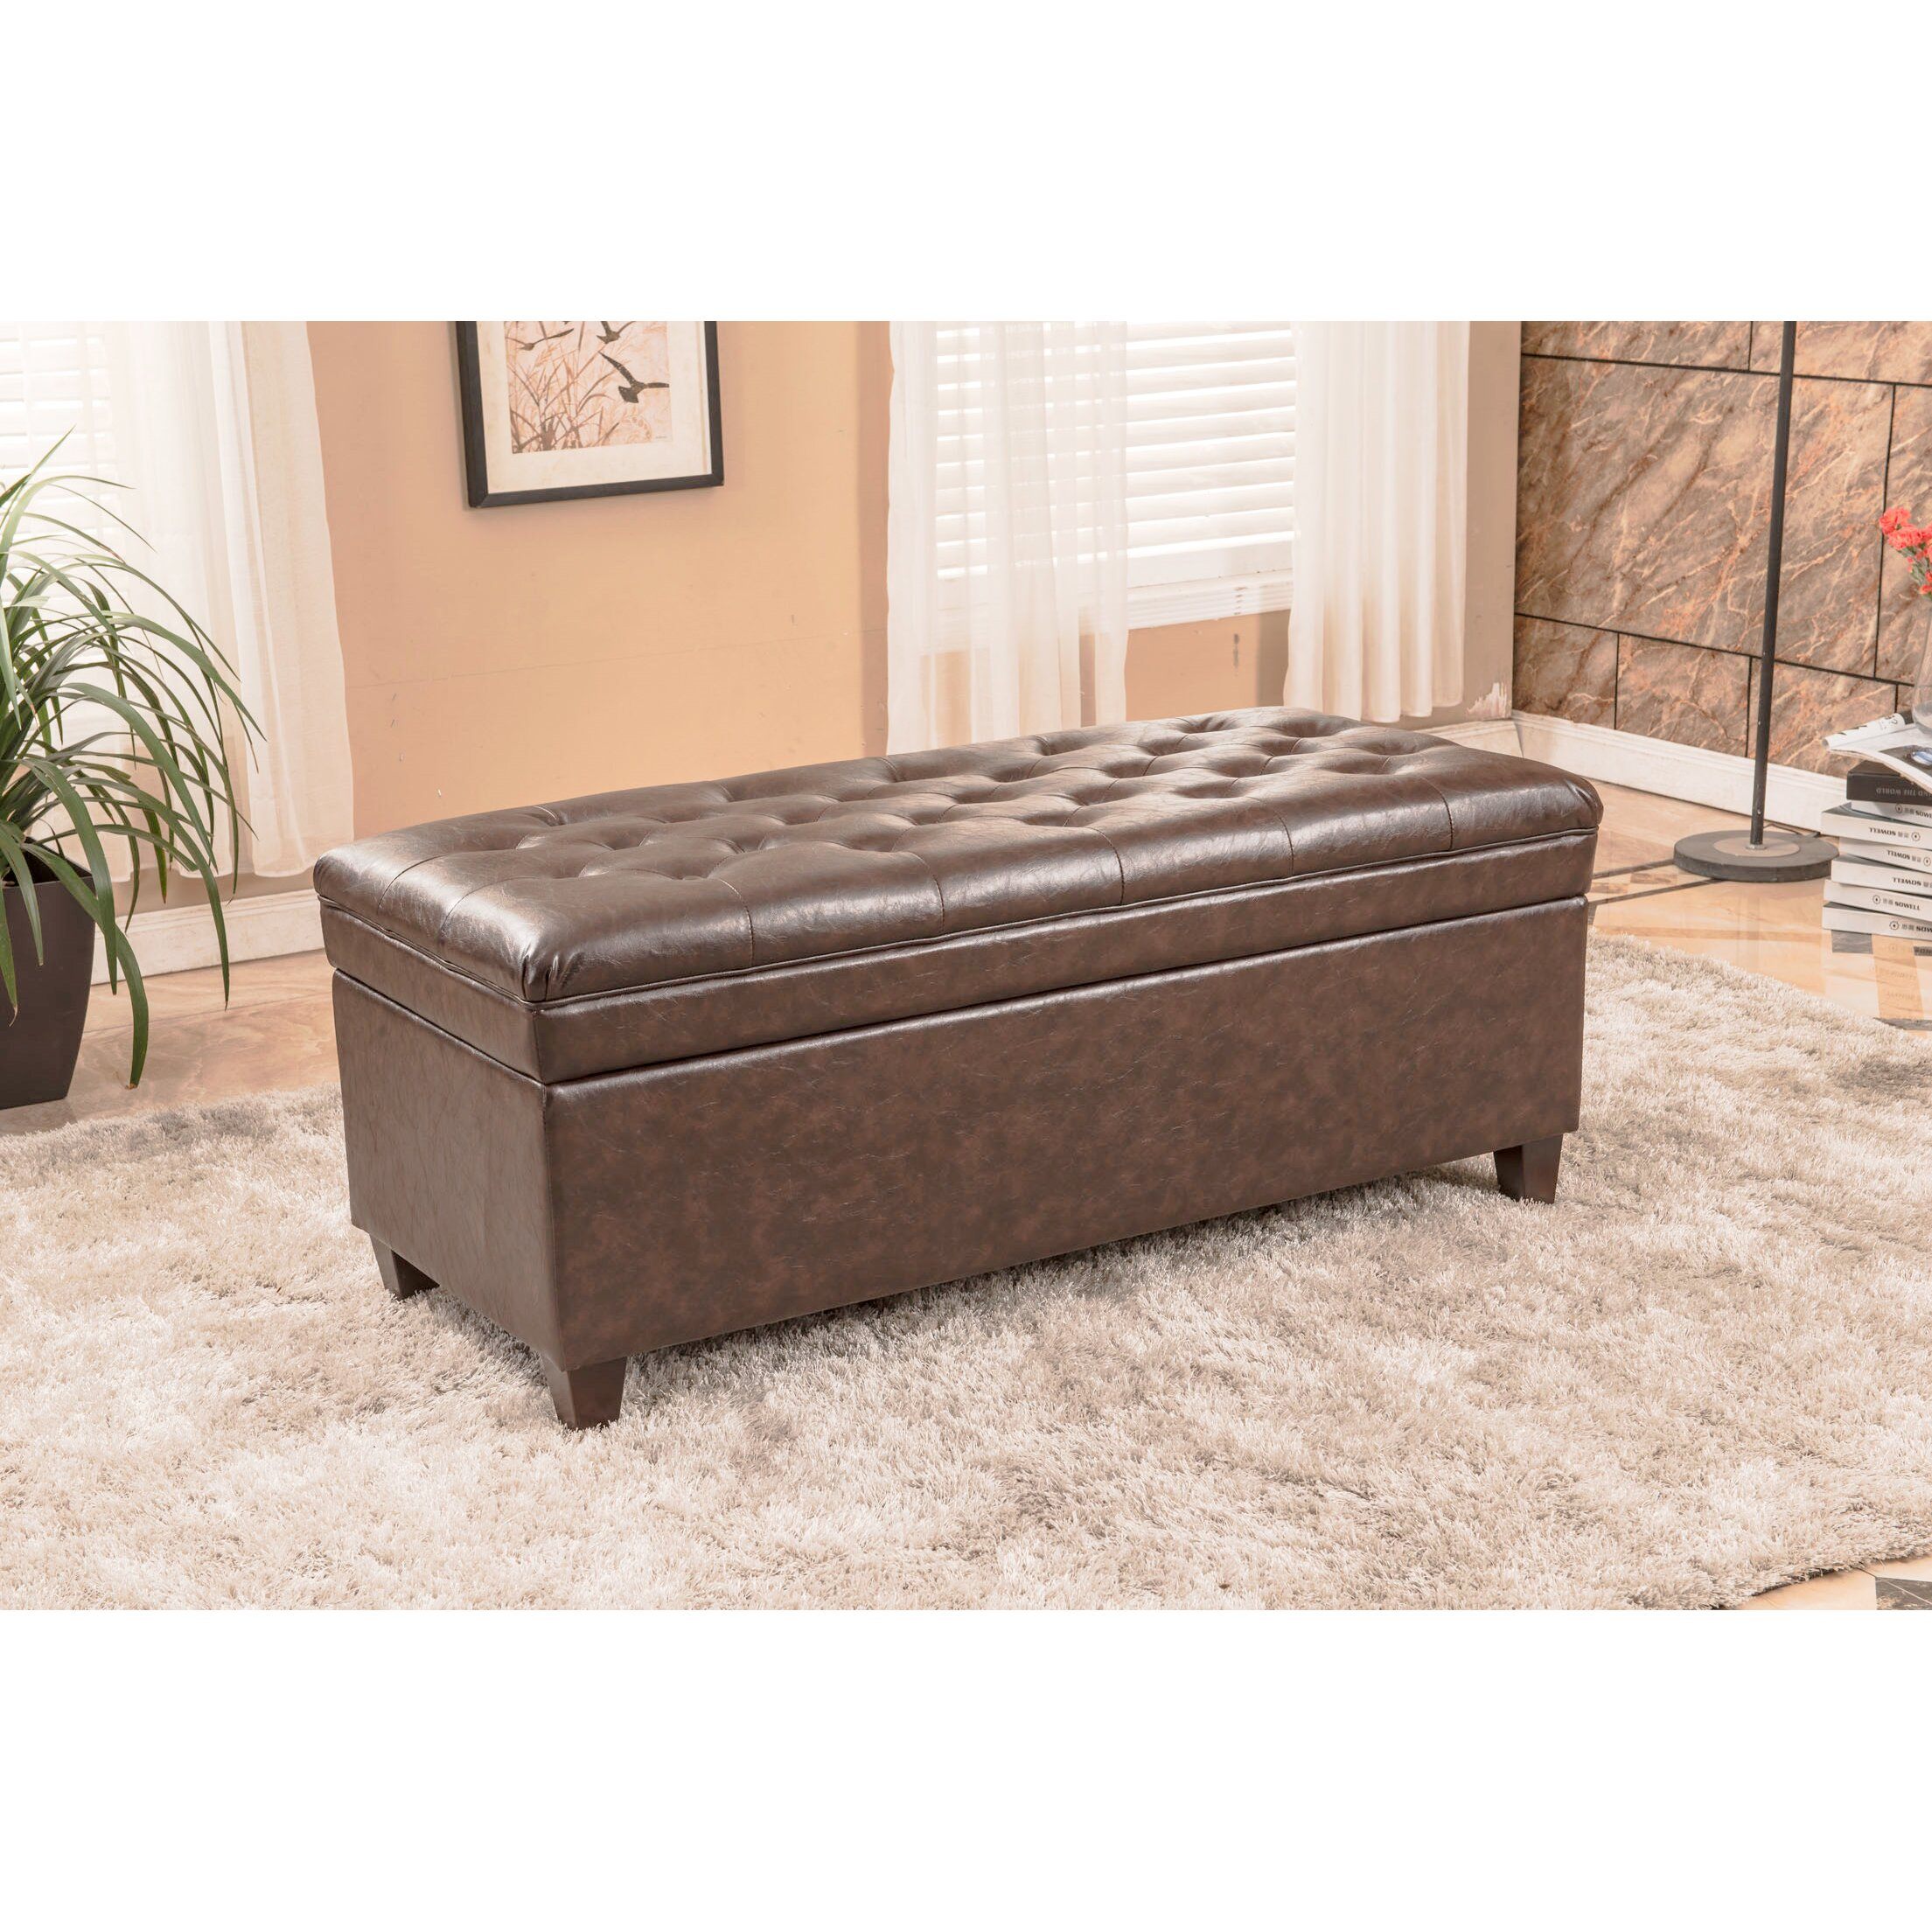 Bellasario collection upholstered storage bedroom bench reviews wayfair Bed benches